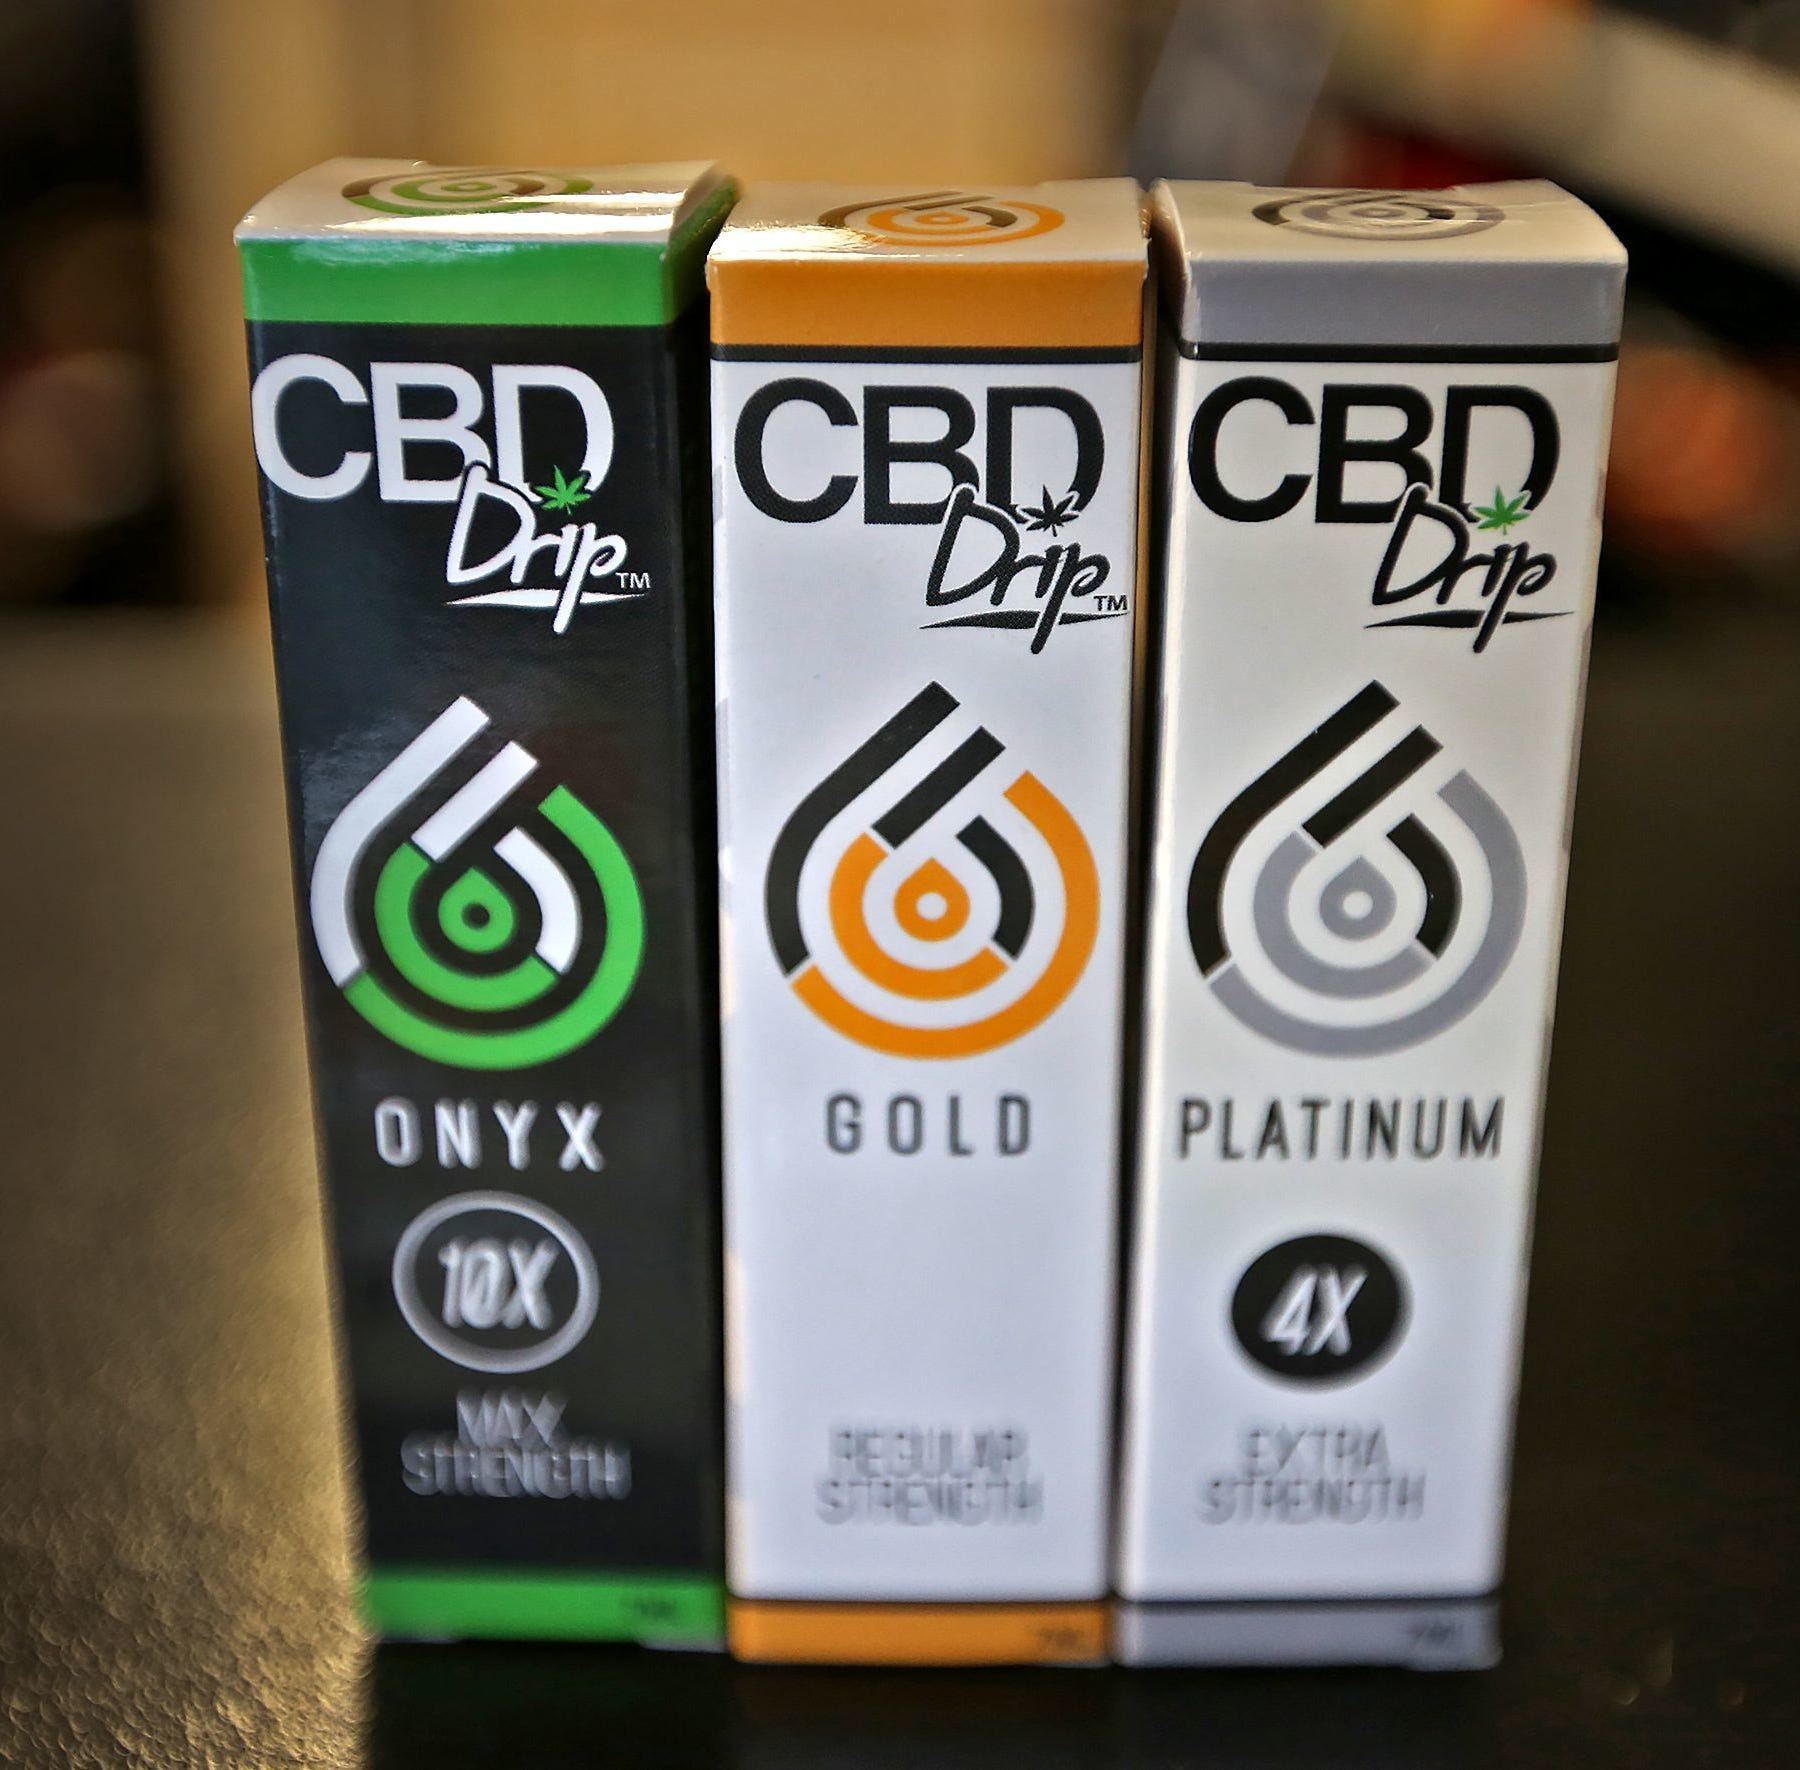 Indy's first CBD expo is happening Friday and Saturday. Here's what to expect if you go.